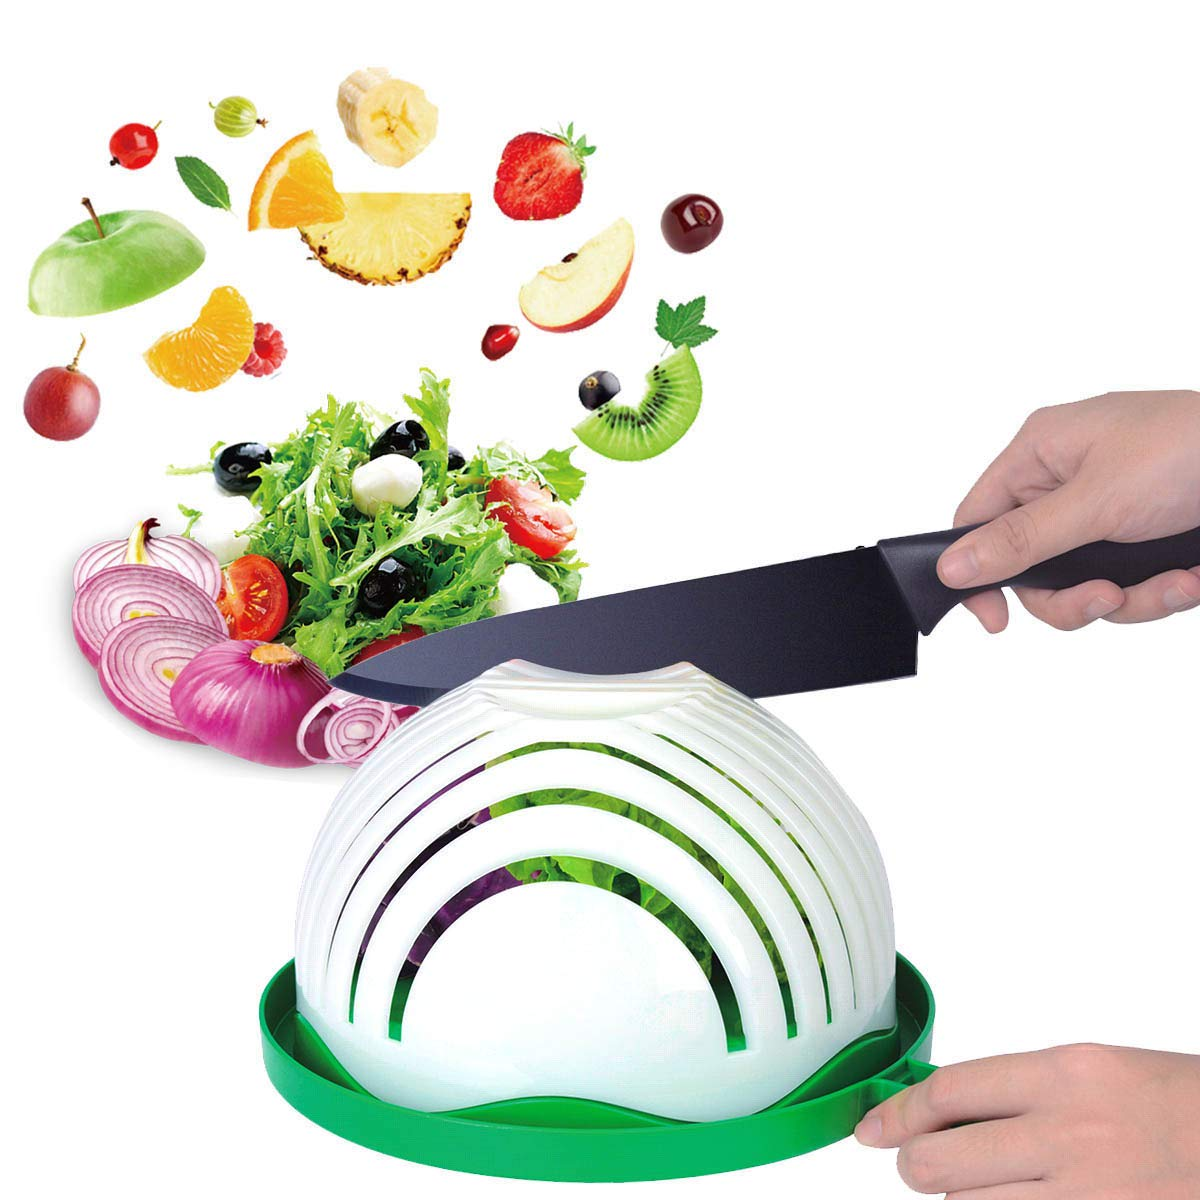 Salad Cutter Bowl, Anglink Upgraded Salad Maker Family Size Fast Vegetable Cutter Bowl, Salad Slicer Salad Chopper Strainer Cutting Board 4 in 1 Durable FDA-Approved for Kitchen by Anglink